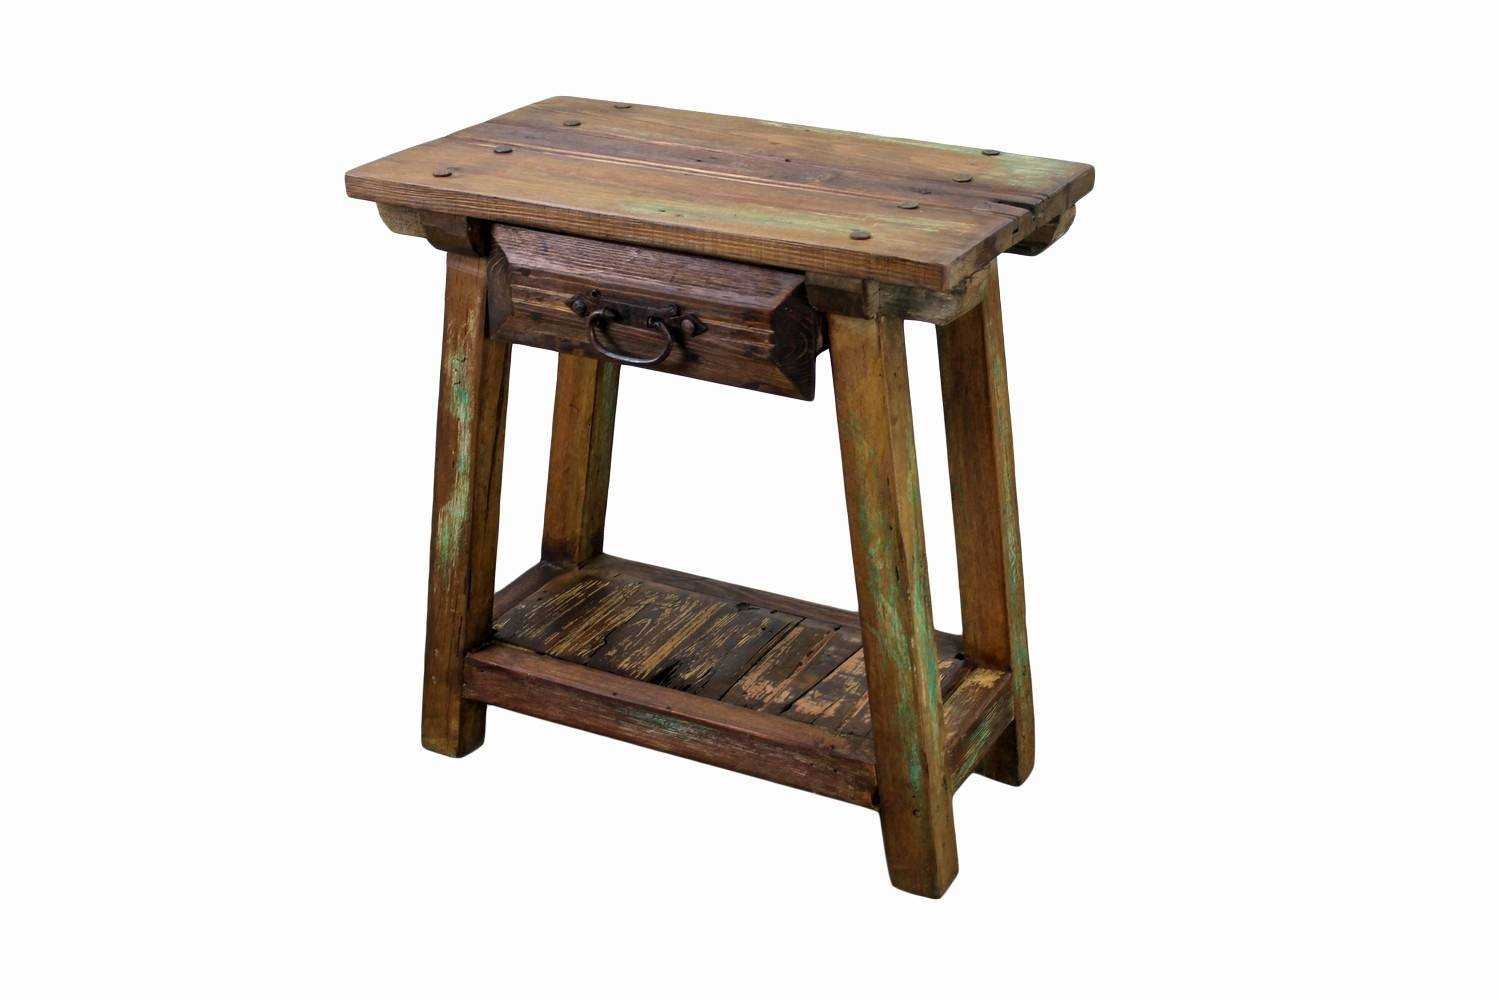 wooden accent tables modern recycled pine wood end table kitchen cute chair bath and beyond gift registry skinny ikea round painted trestle garden dining high bar black brown